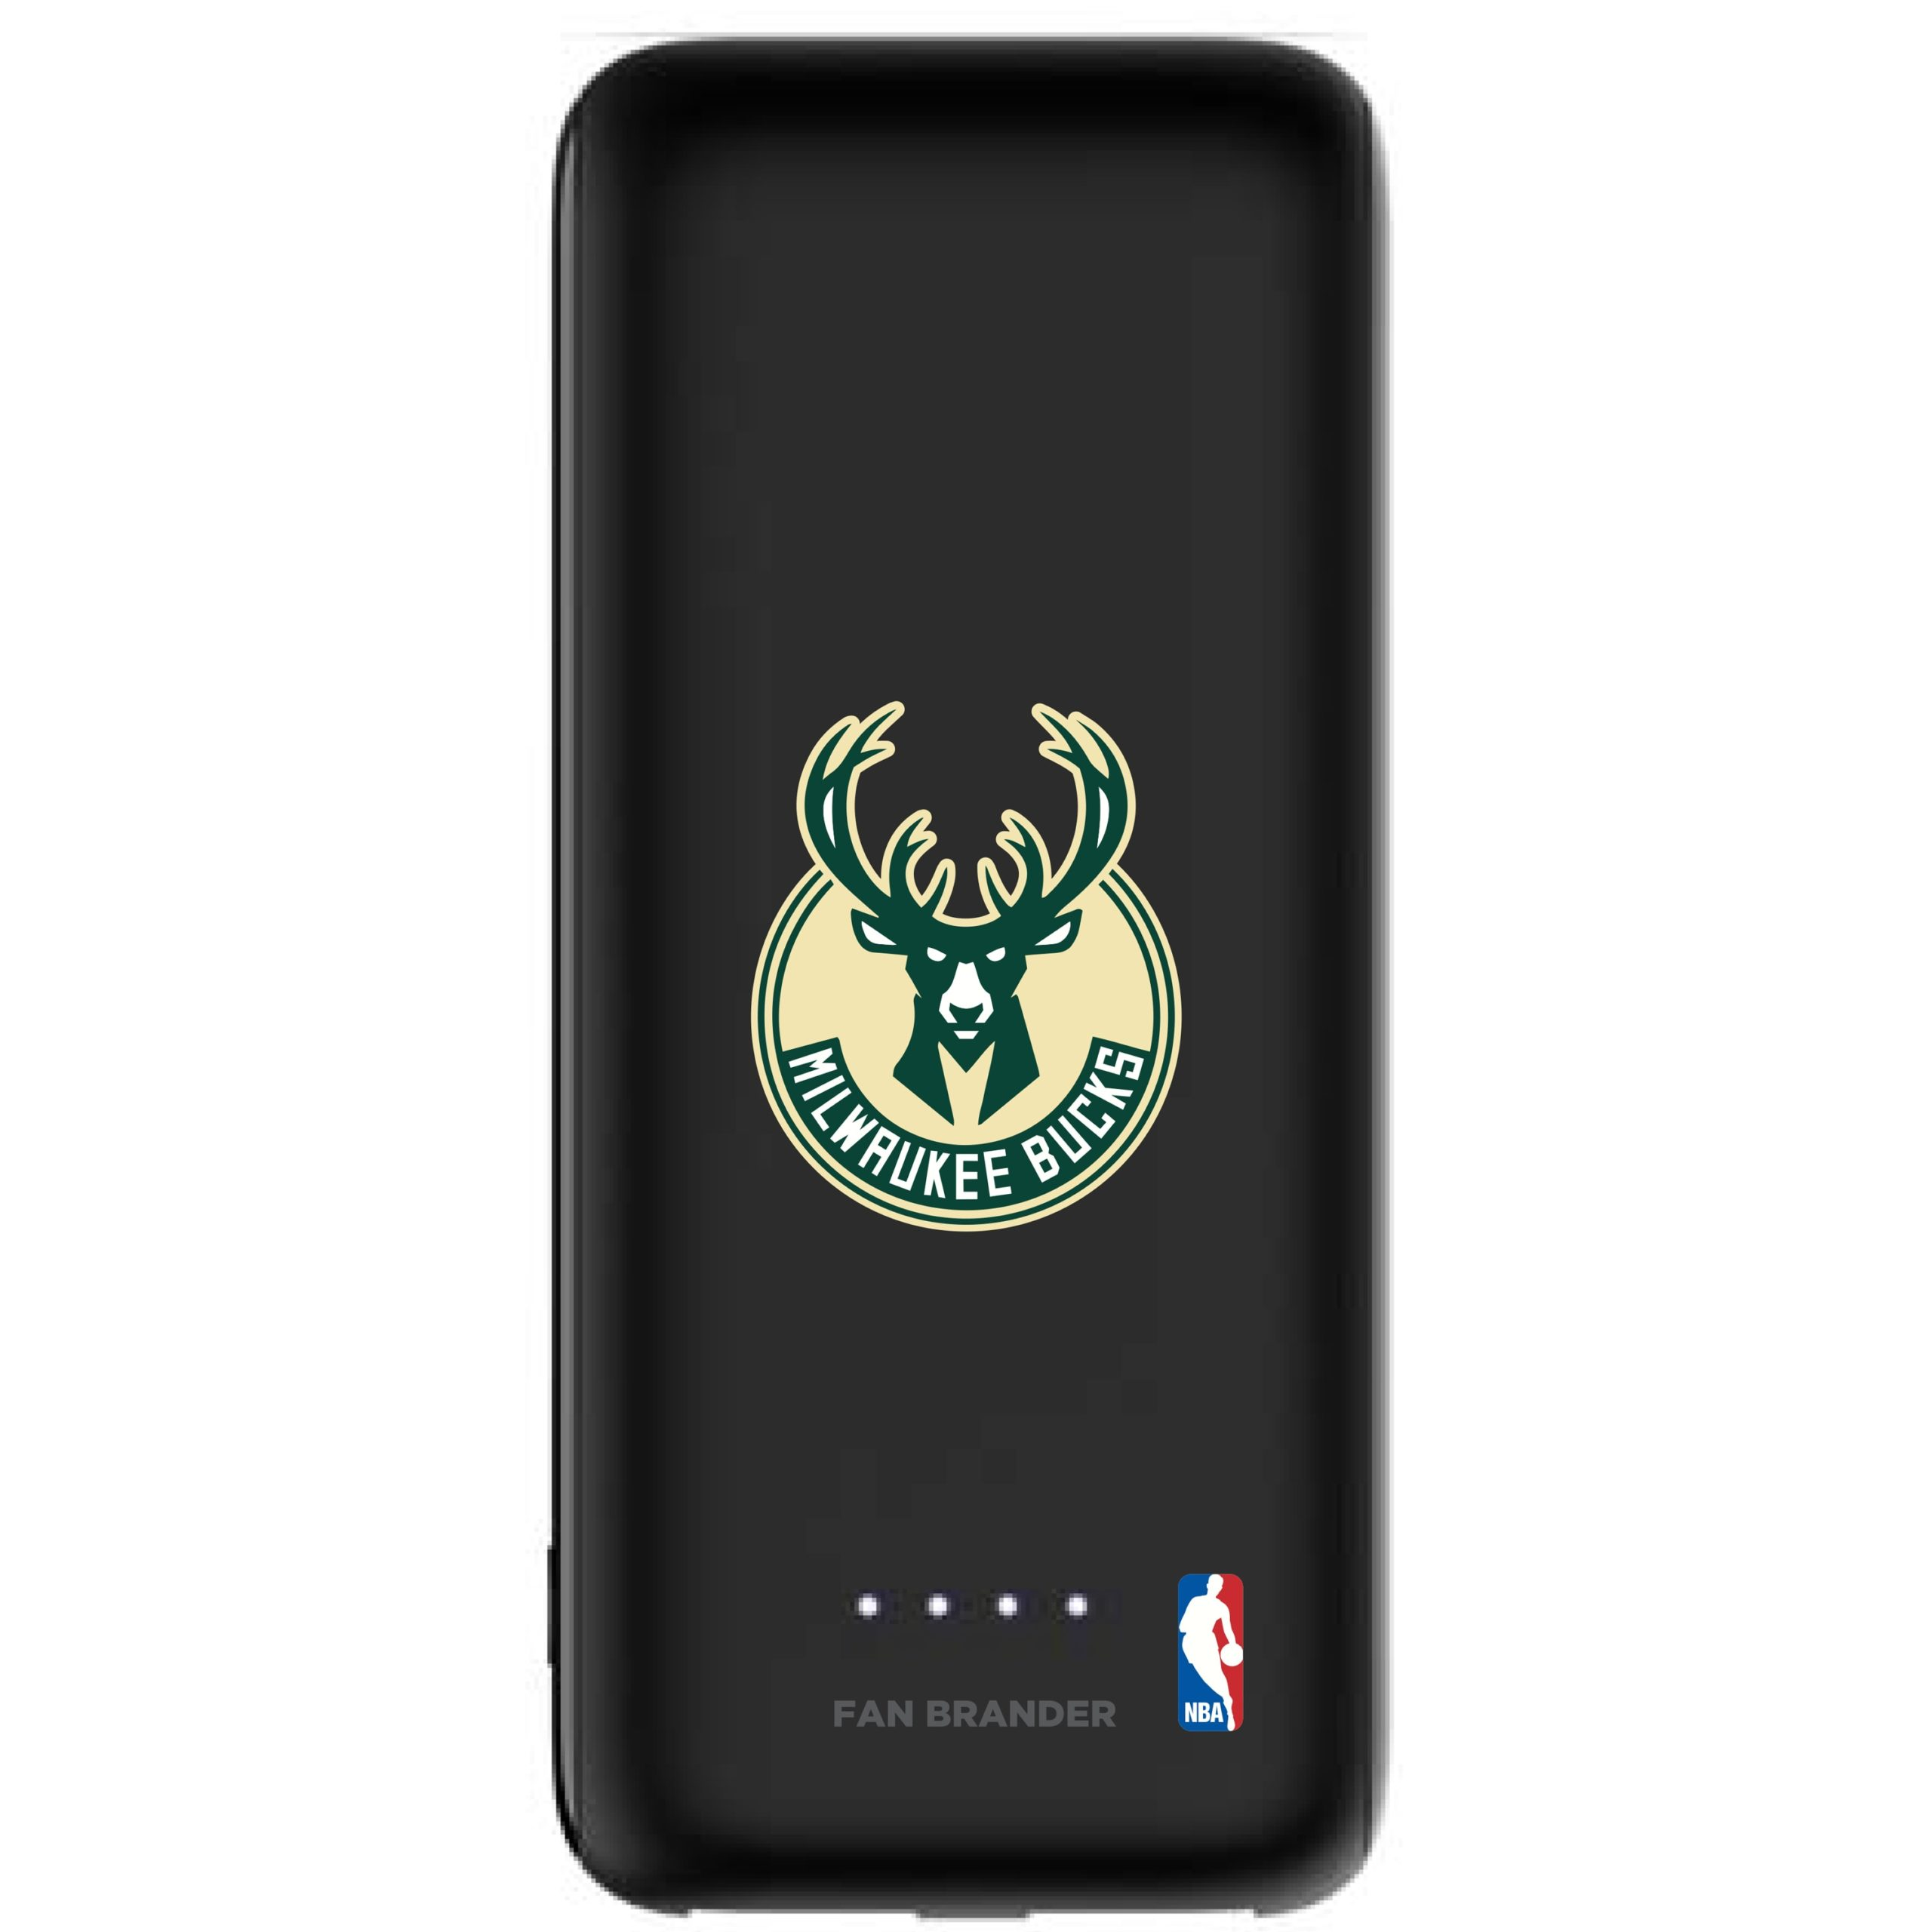 Milwaukee Bucks mophie 5200 mAh Universal Battery Power Boost